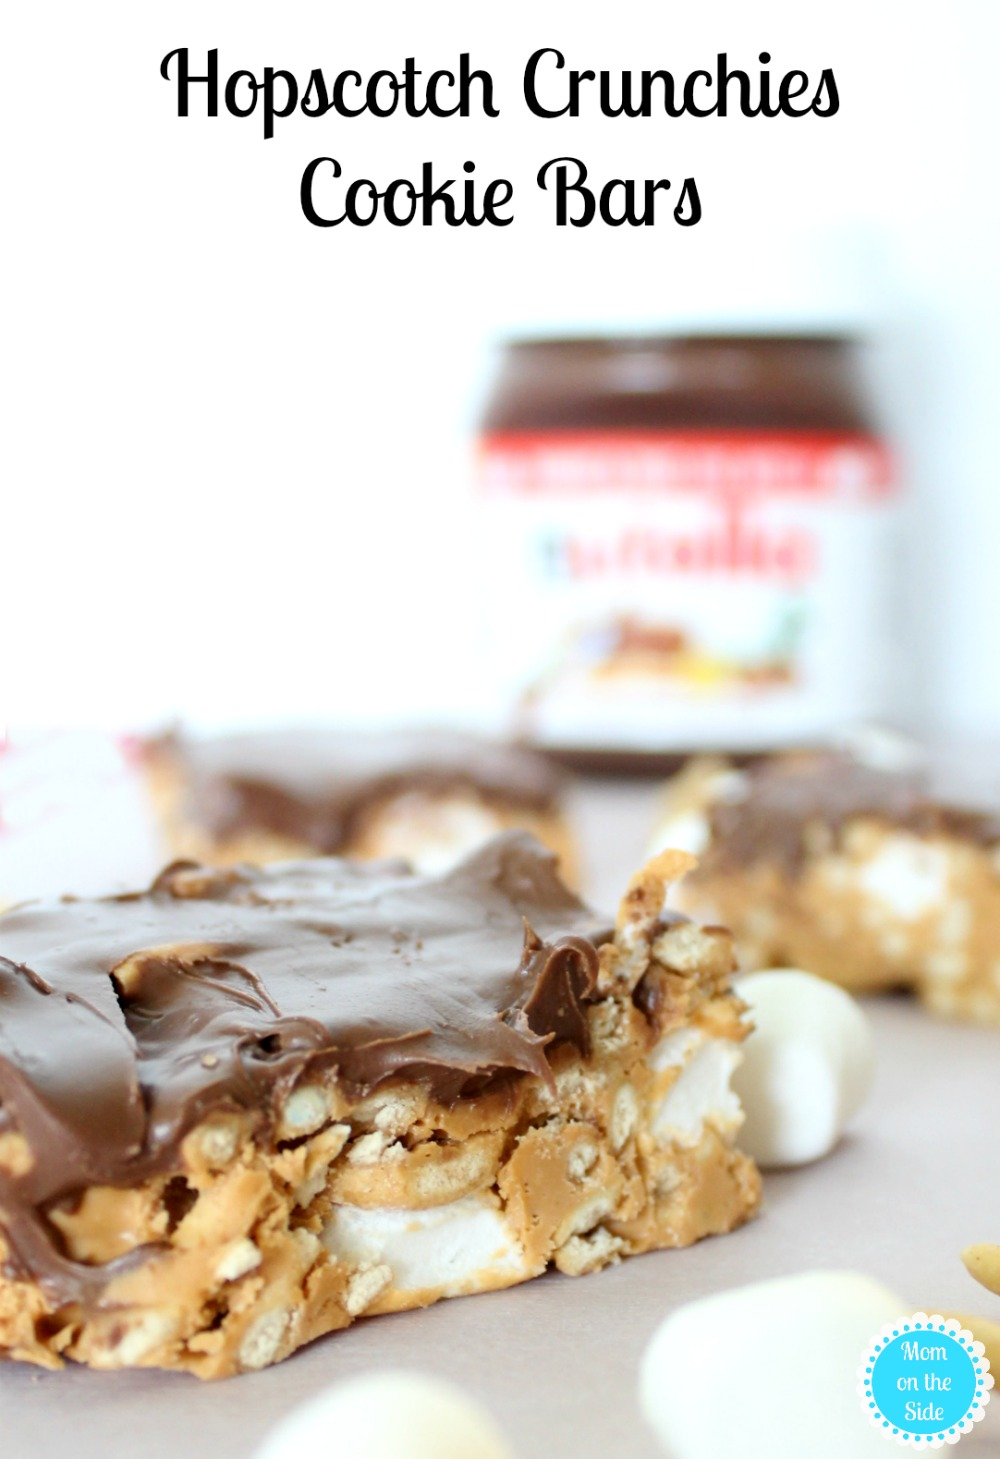 Deliciously easy Christmas cookies recipe for Hopscotch Crunchies with Nutella Hazelnut Spread